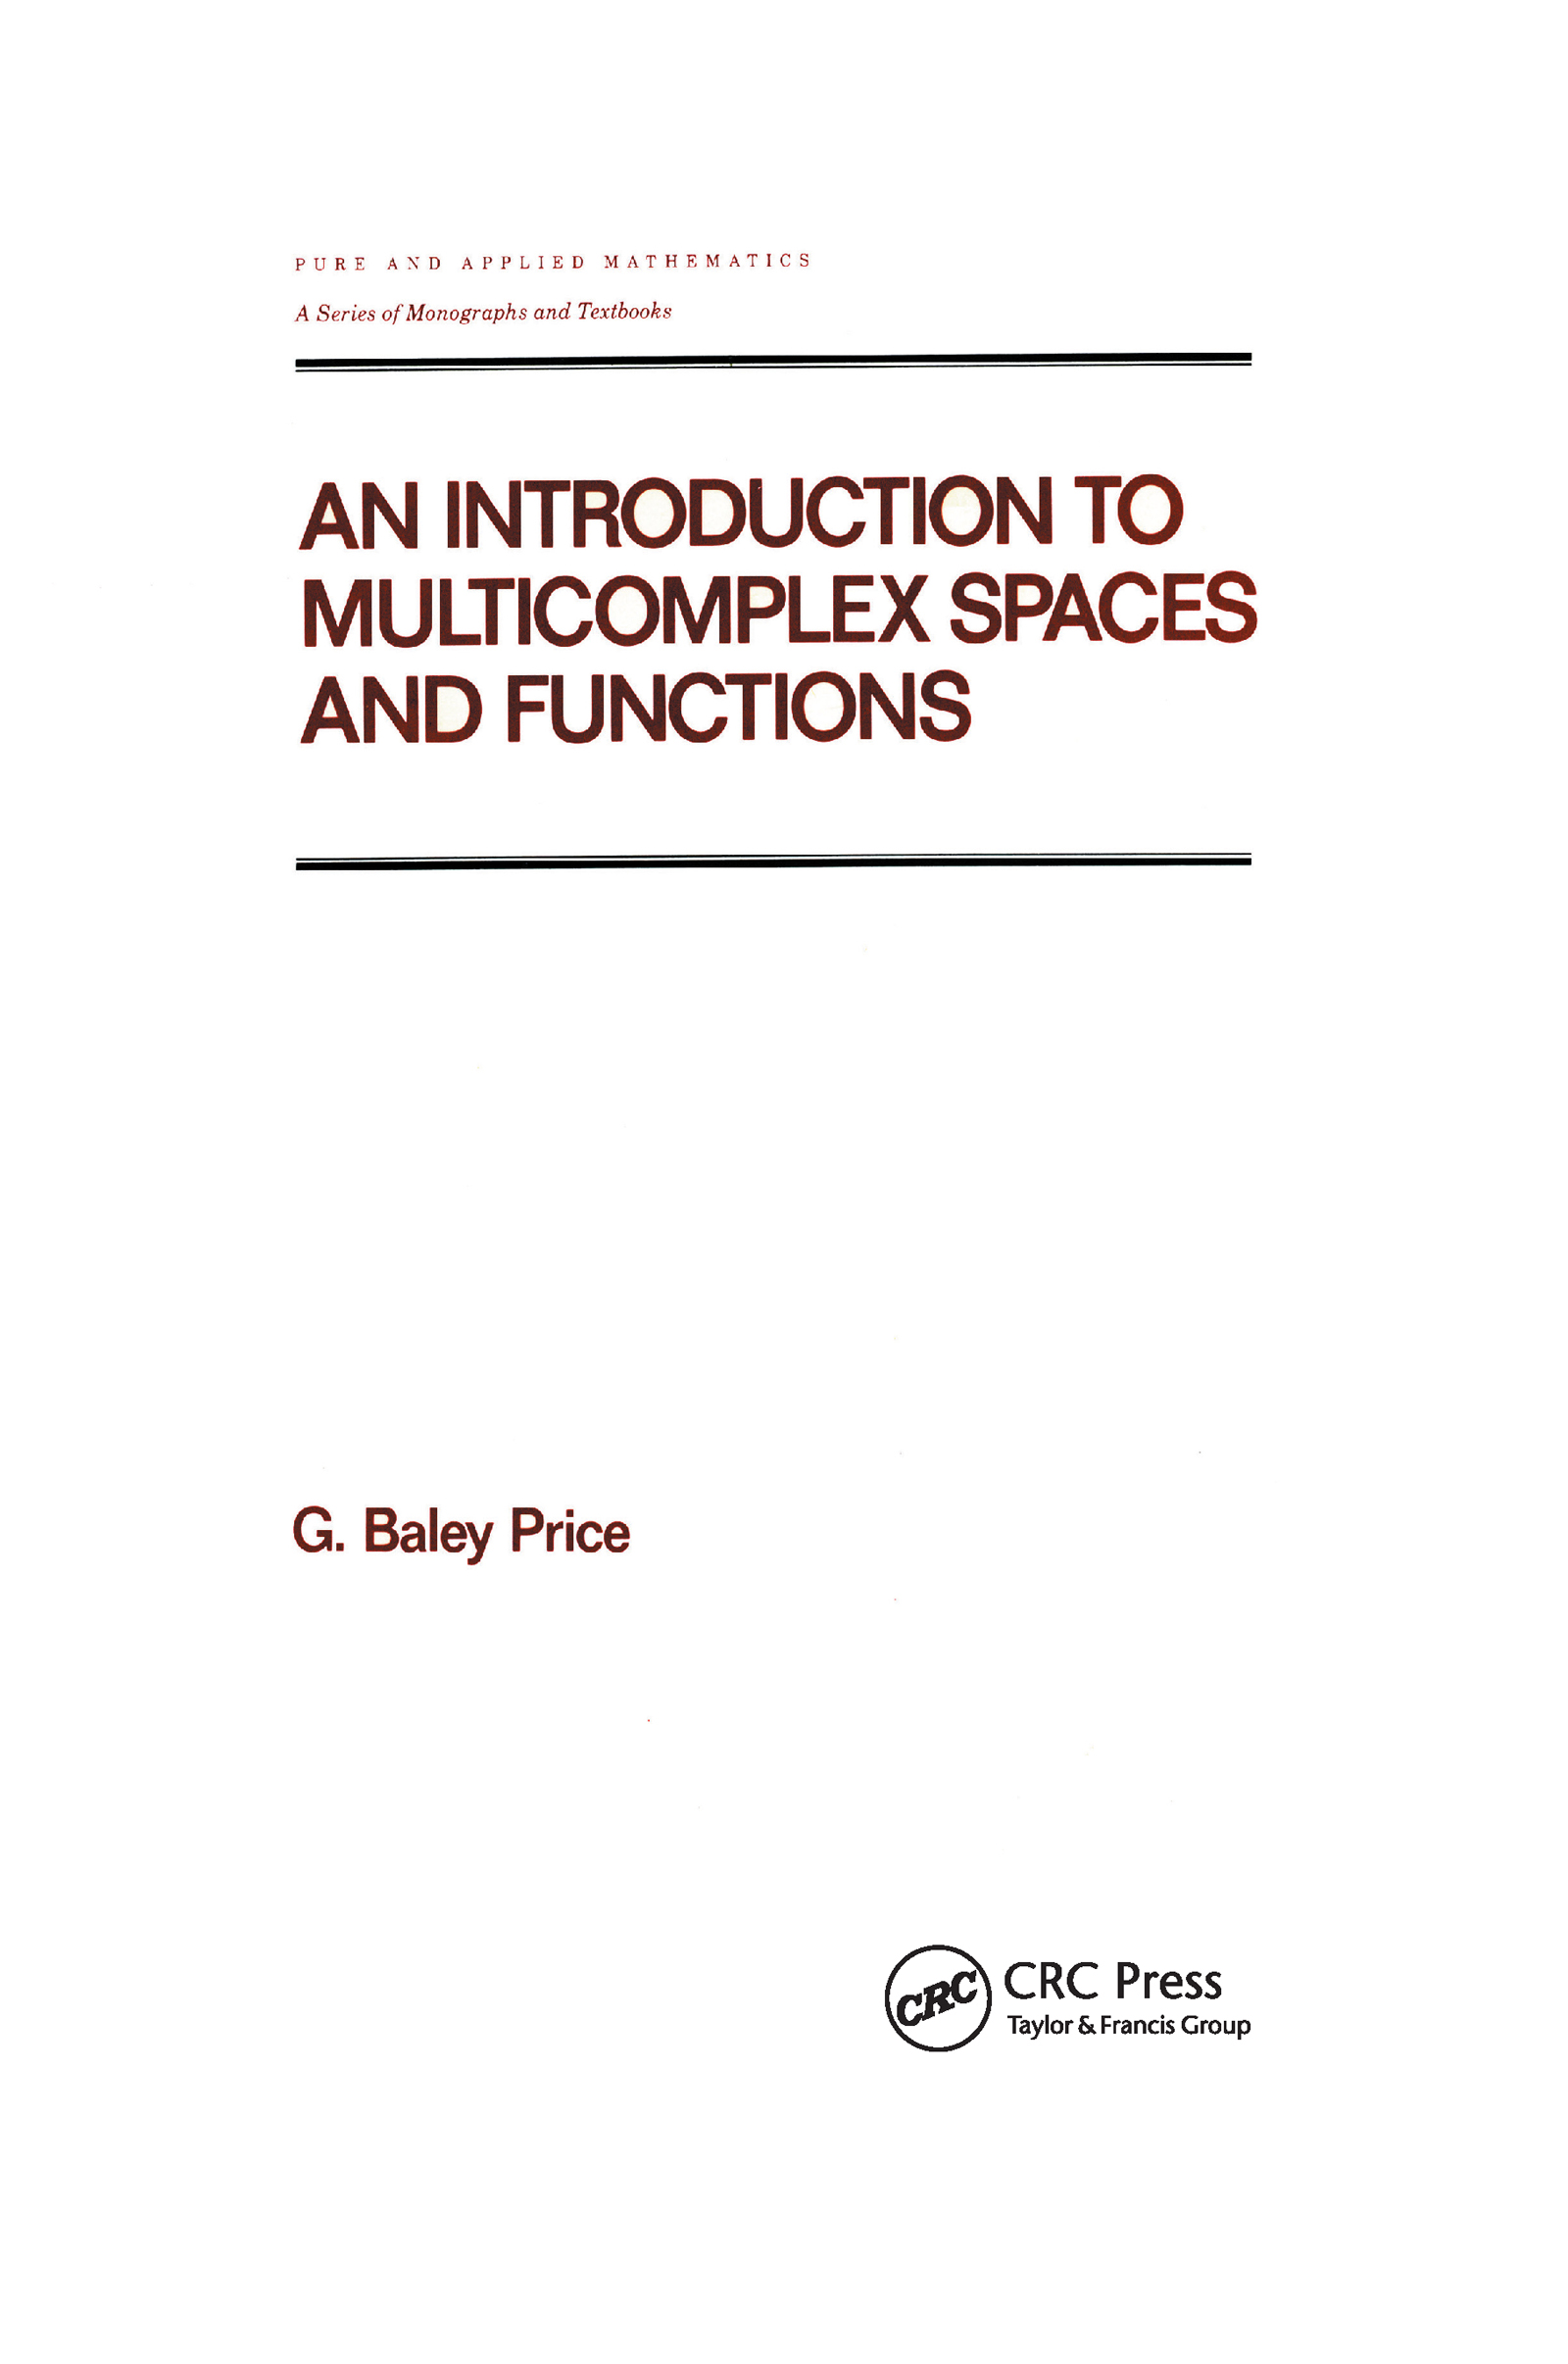 An Introduction to Multicomplex Spaces and Functions